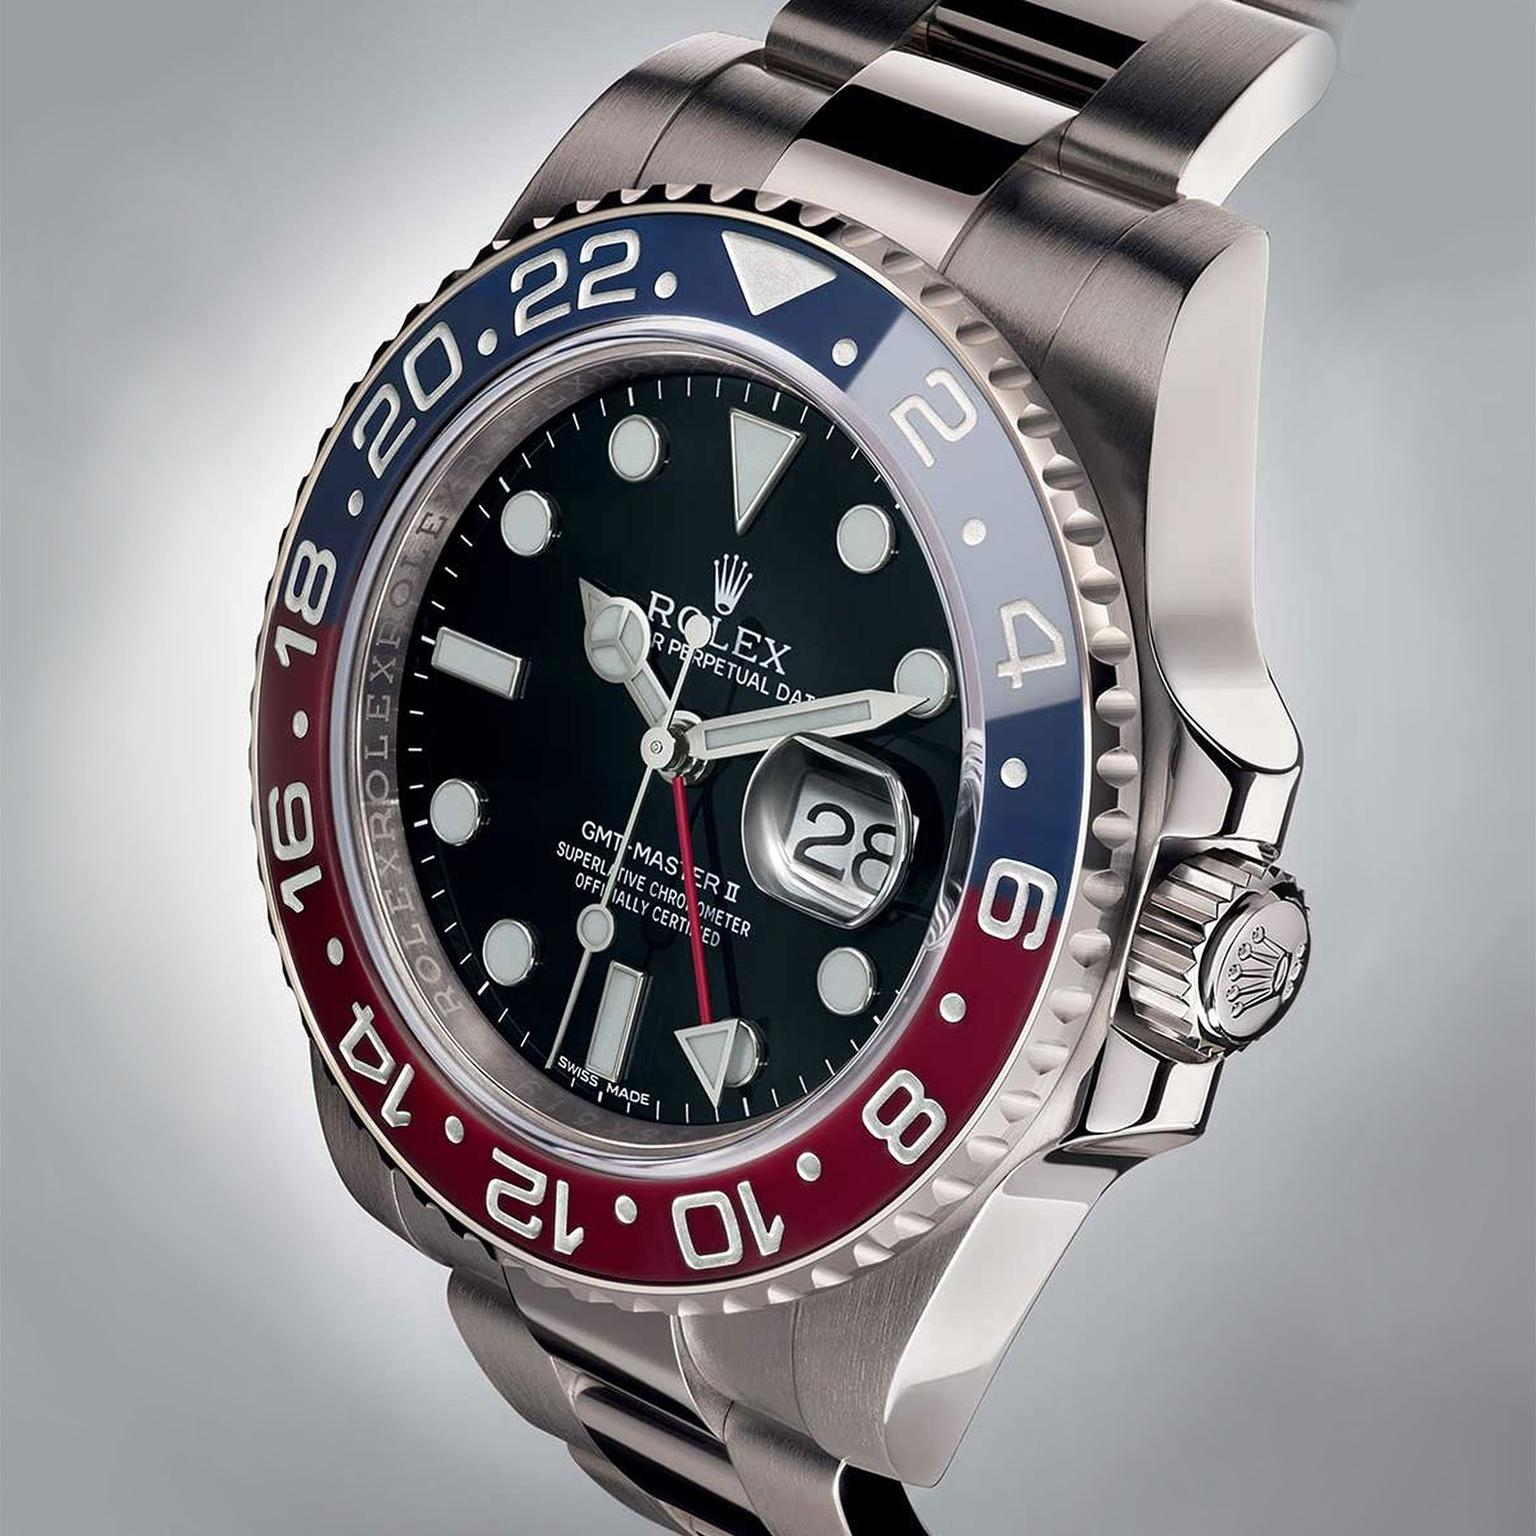 The 2014 Rolex Oyster Perpetual GMT-Master II with pepsi bezel